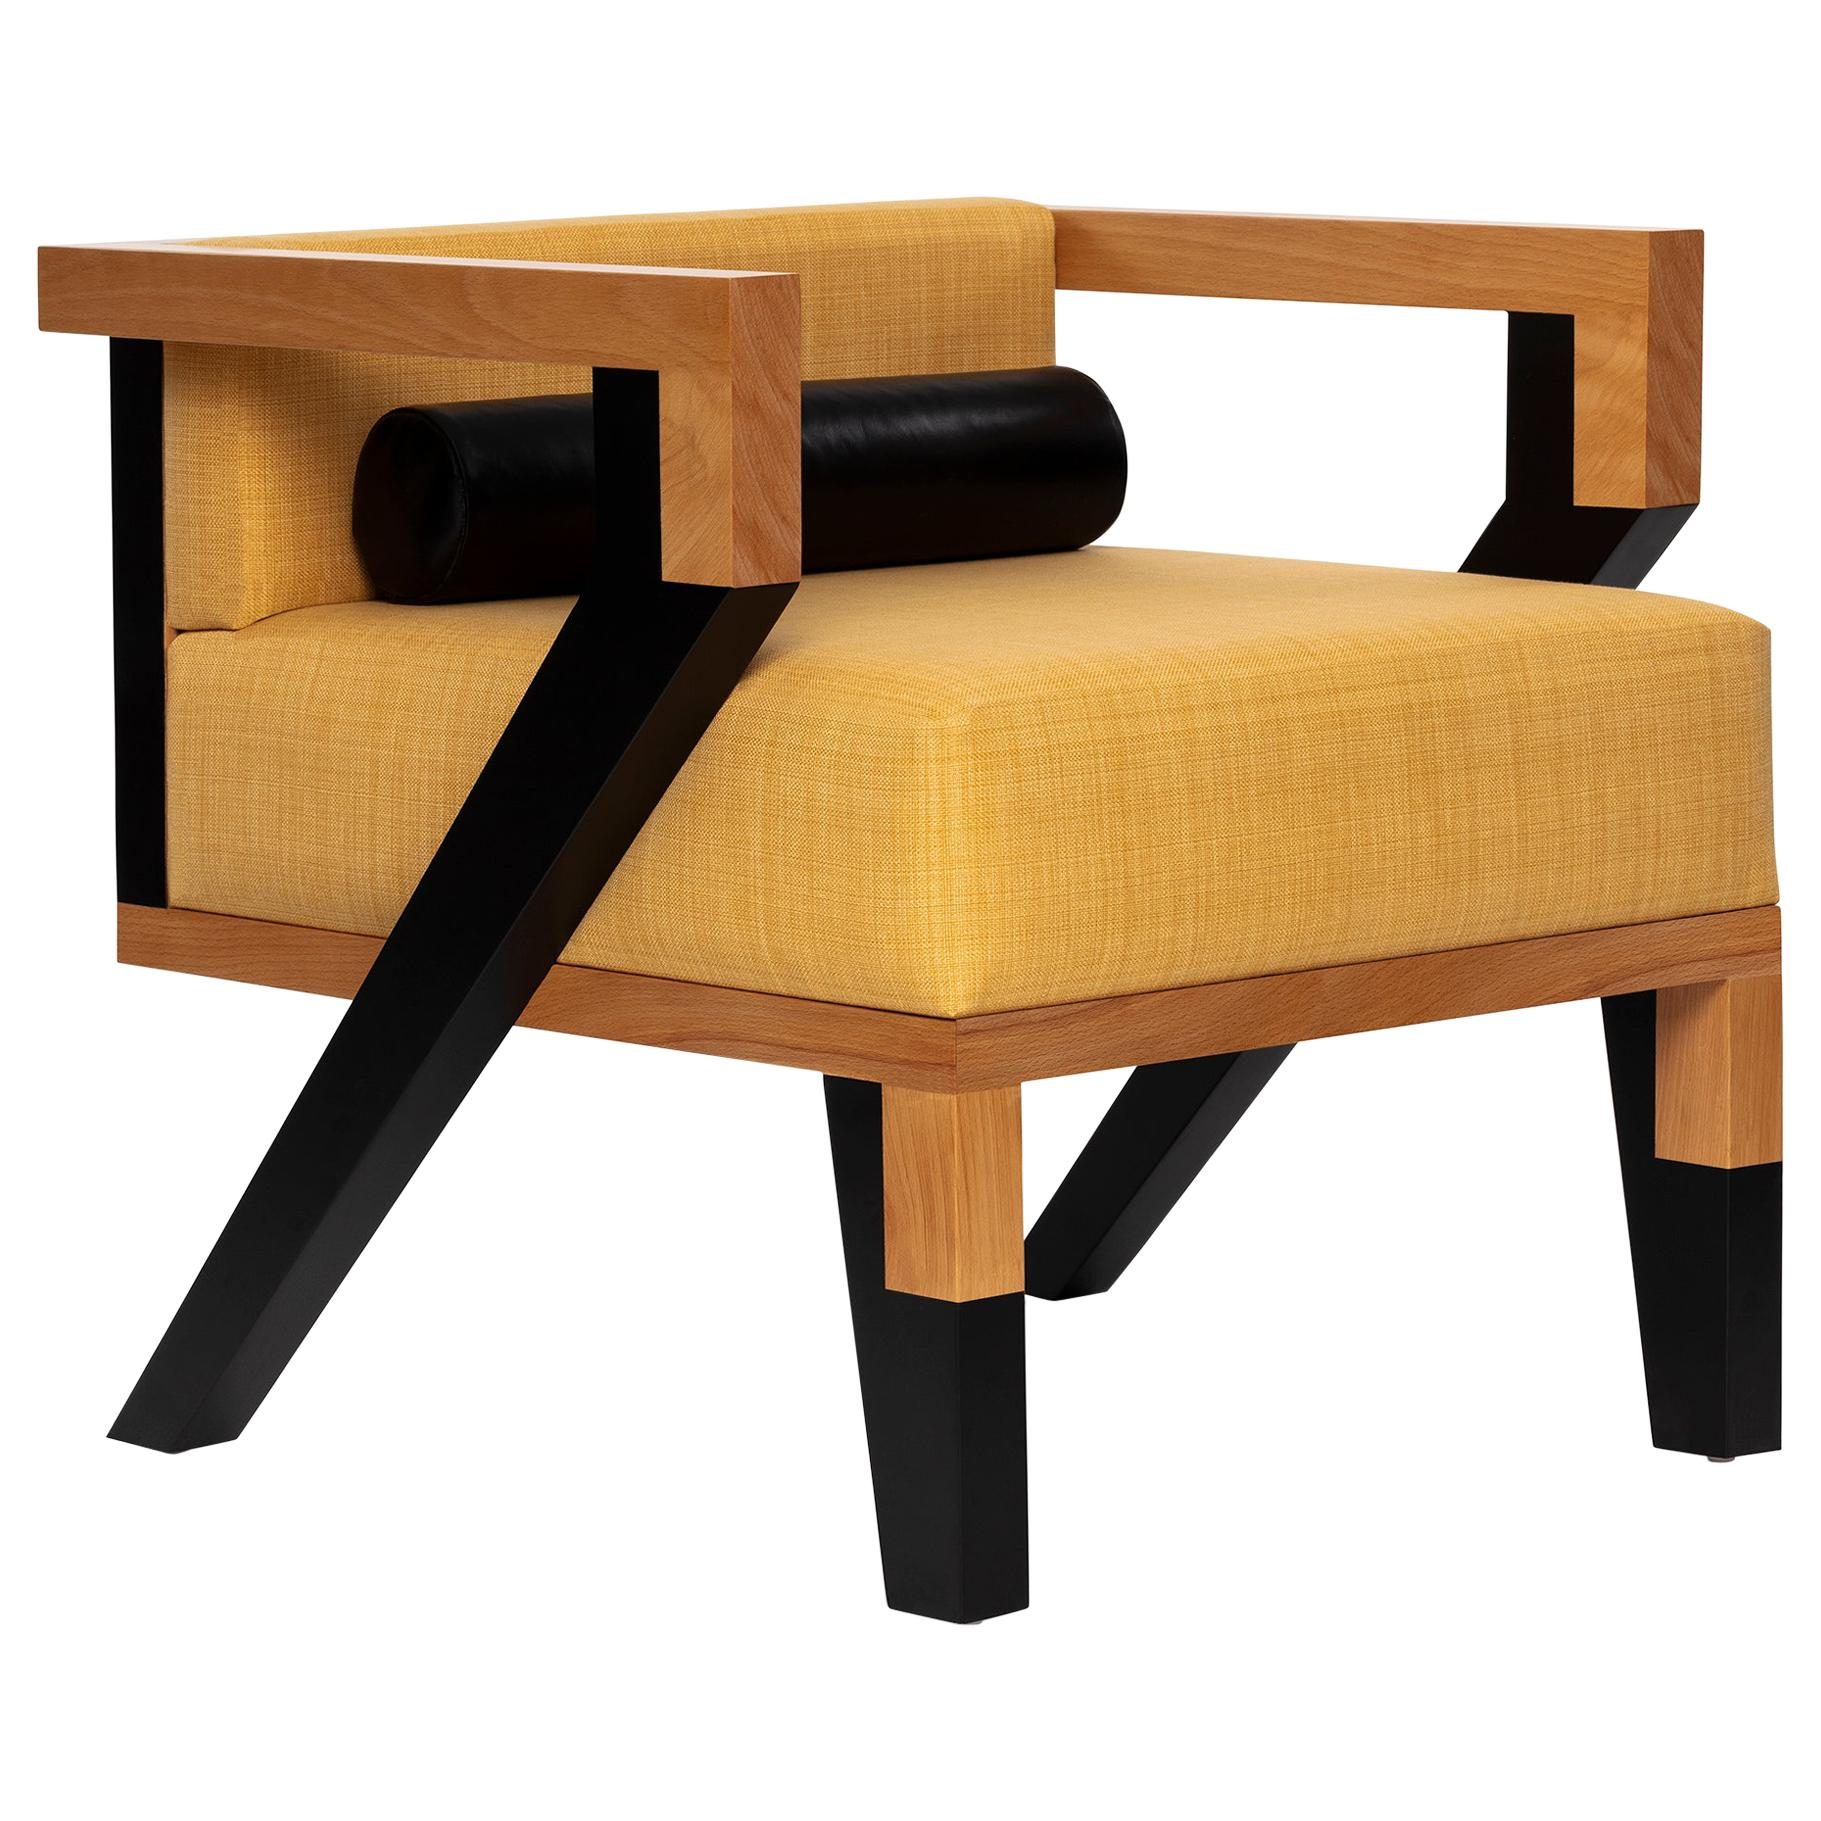 Mid-Century Modern Style Minimal Solid Wood Armchair Upholstered in Textile